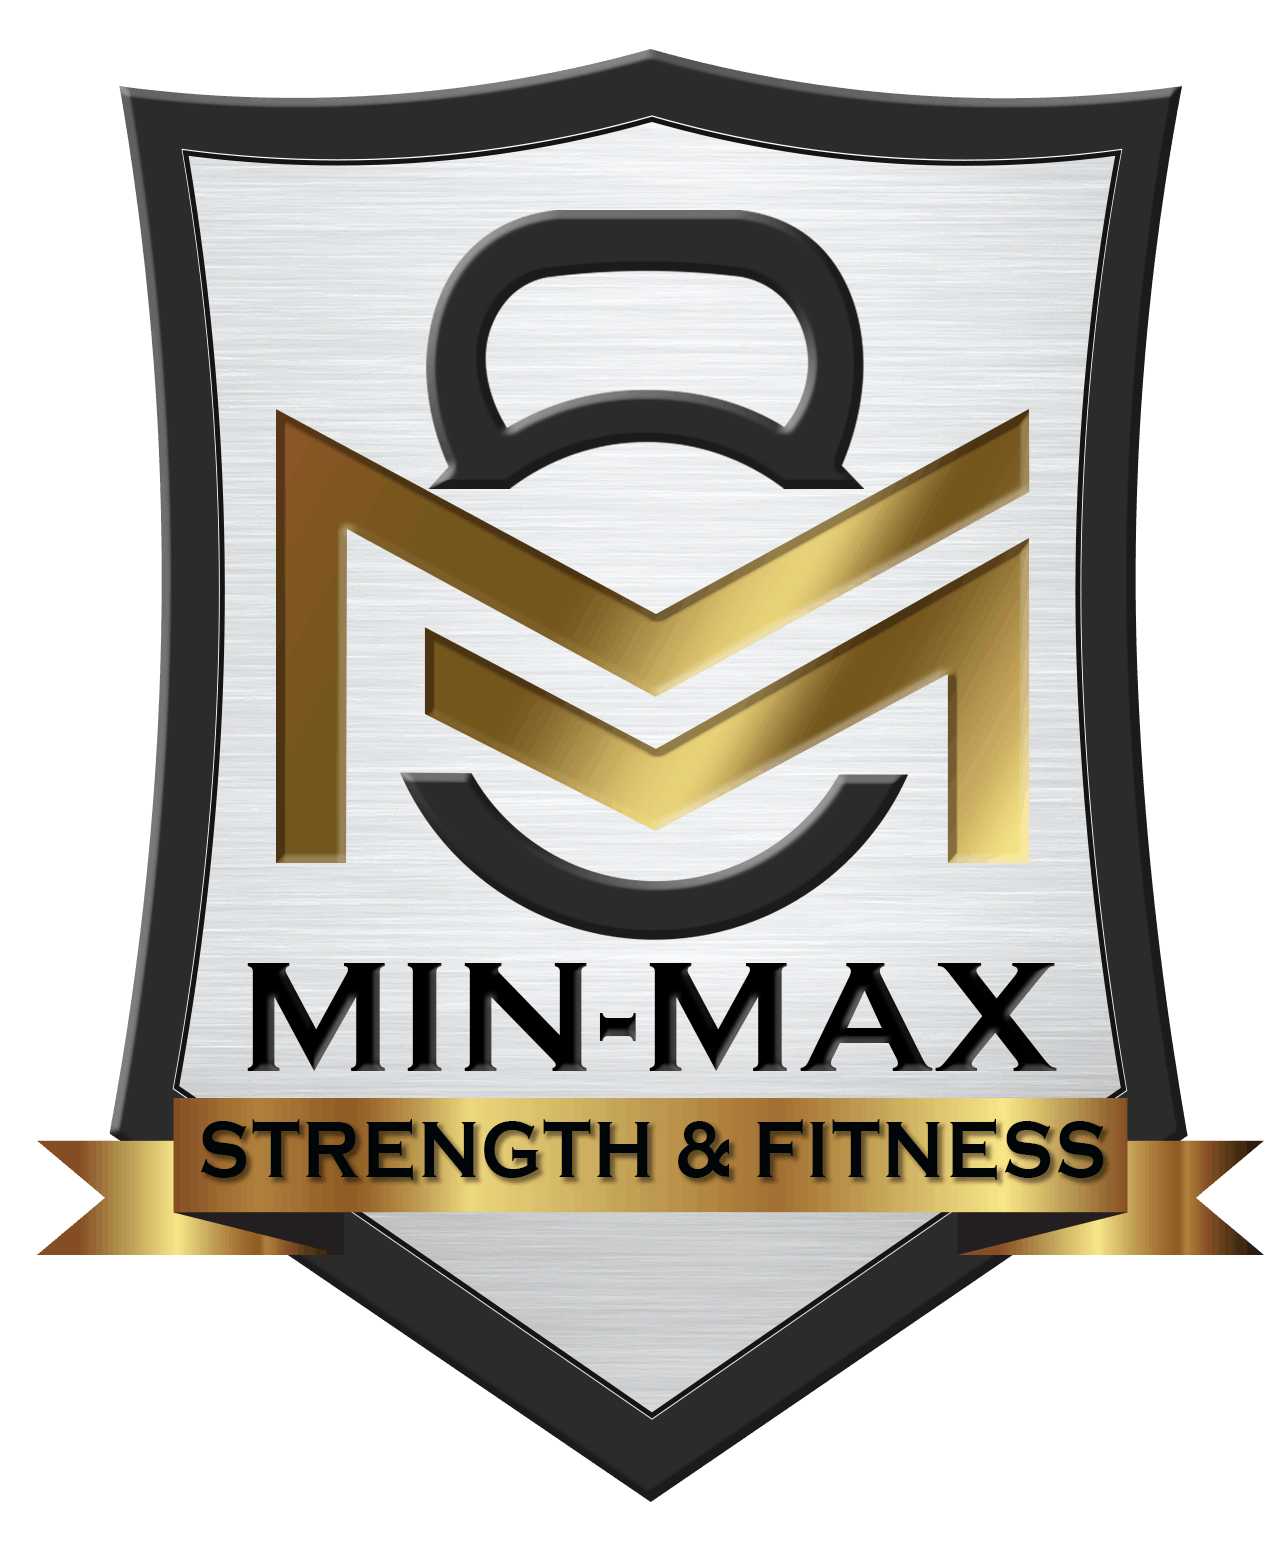 Min max logo silver and black version Copperplate text-1